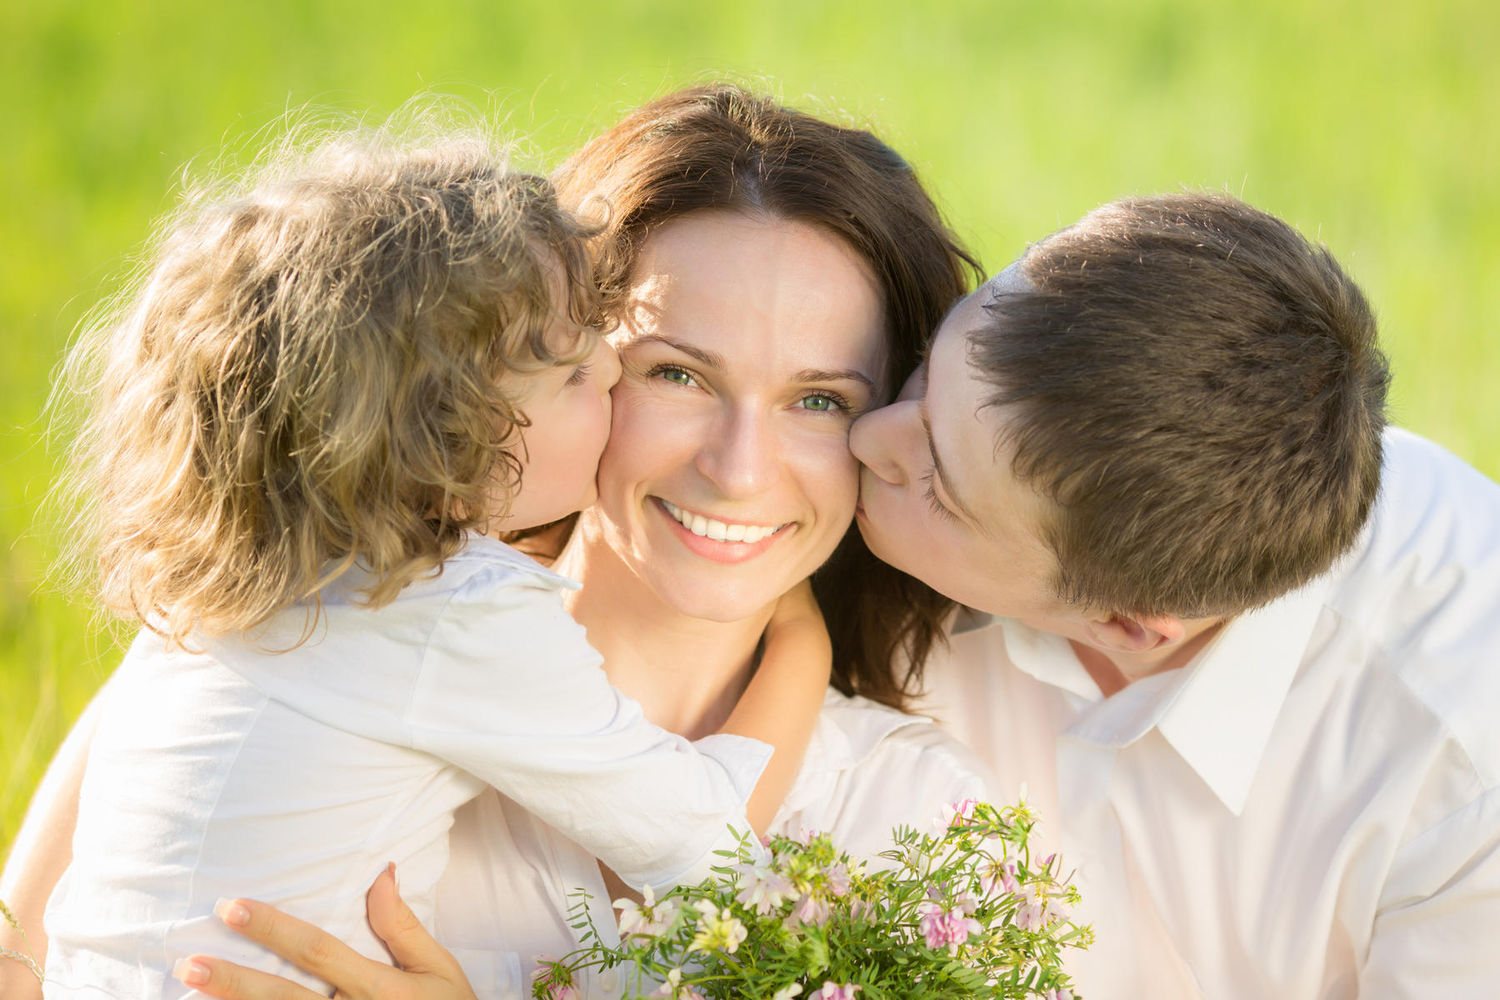 10 Fun Ways to Spend Mother's Day